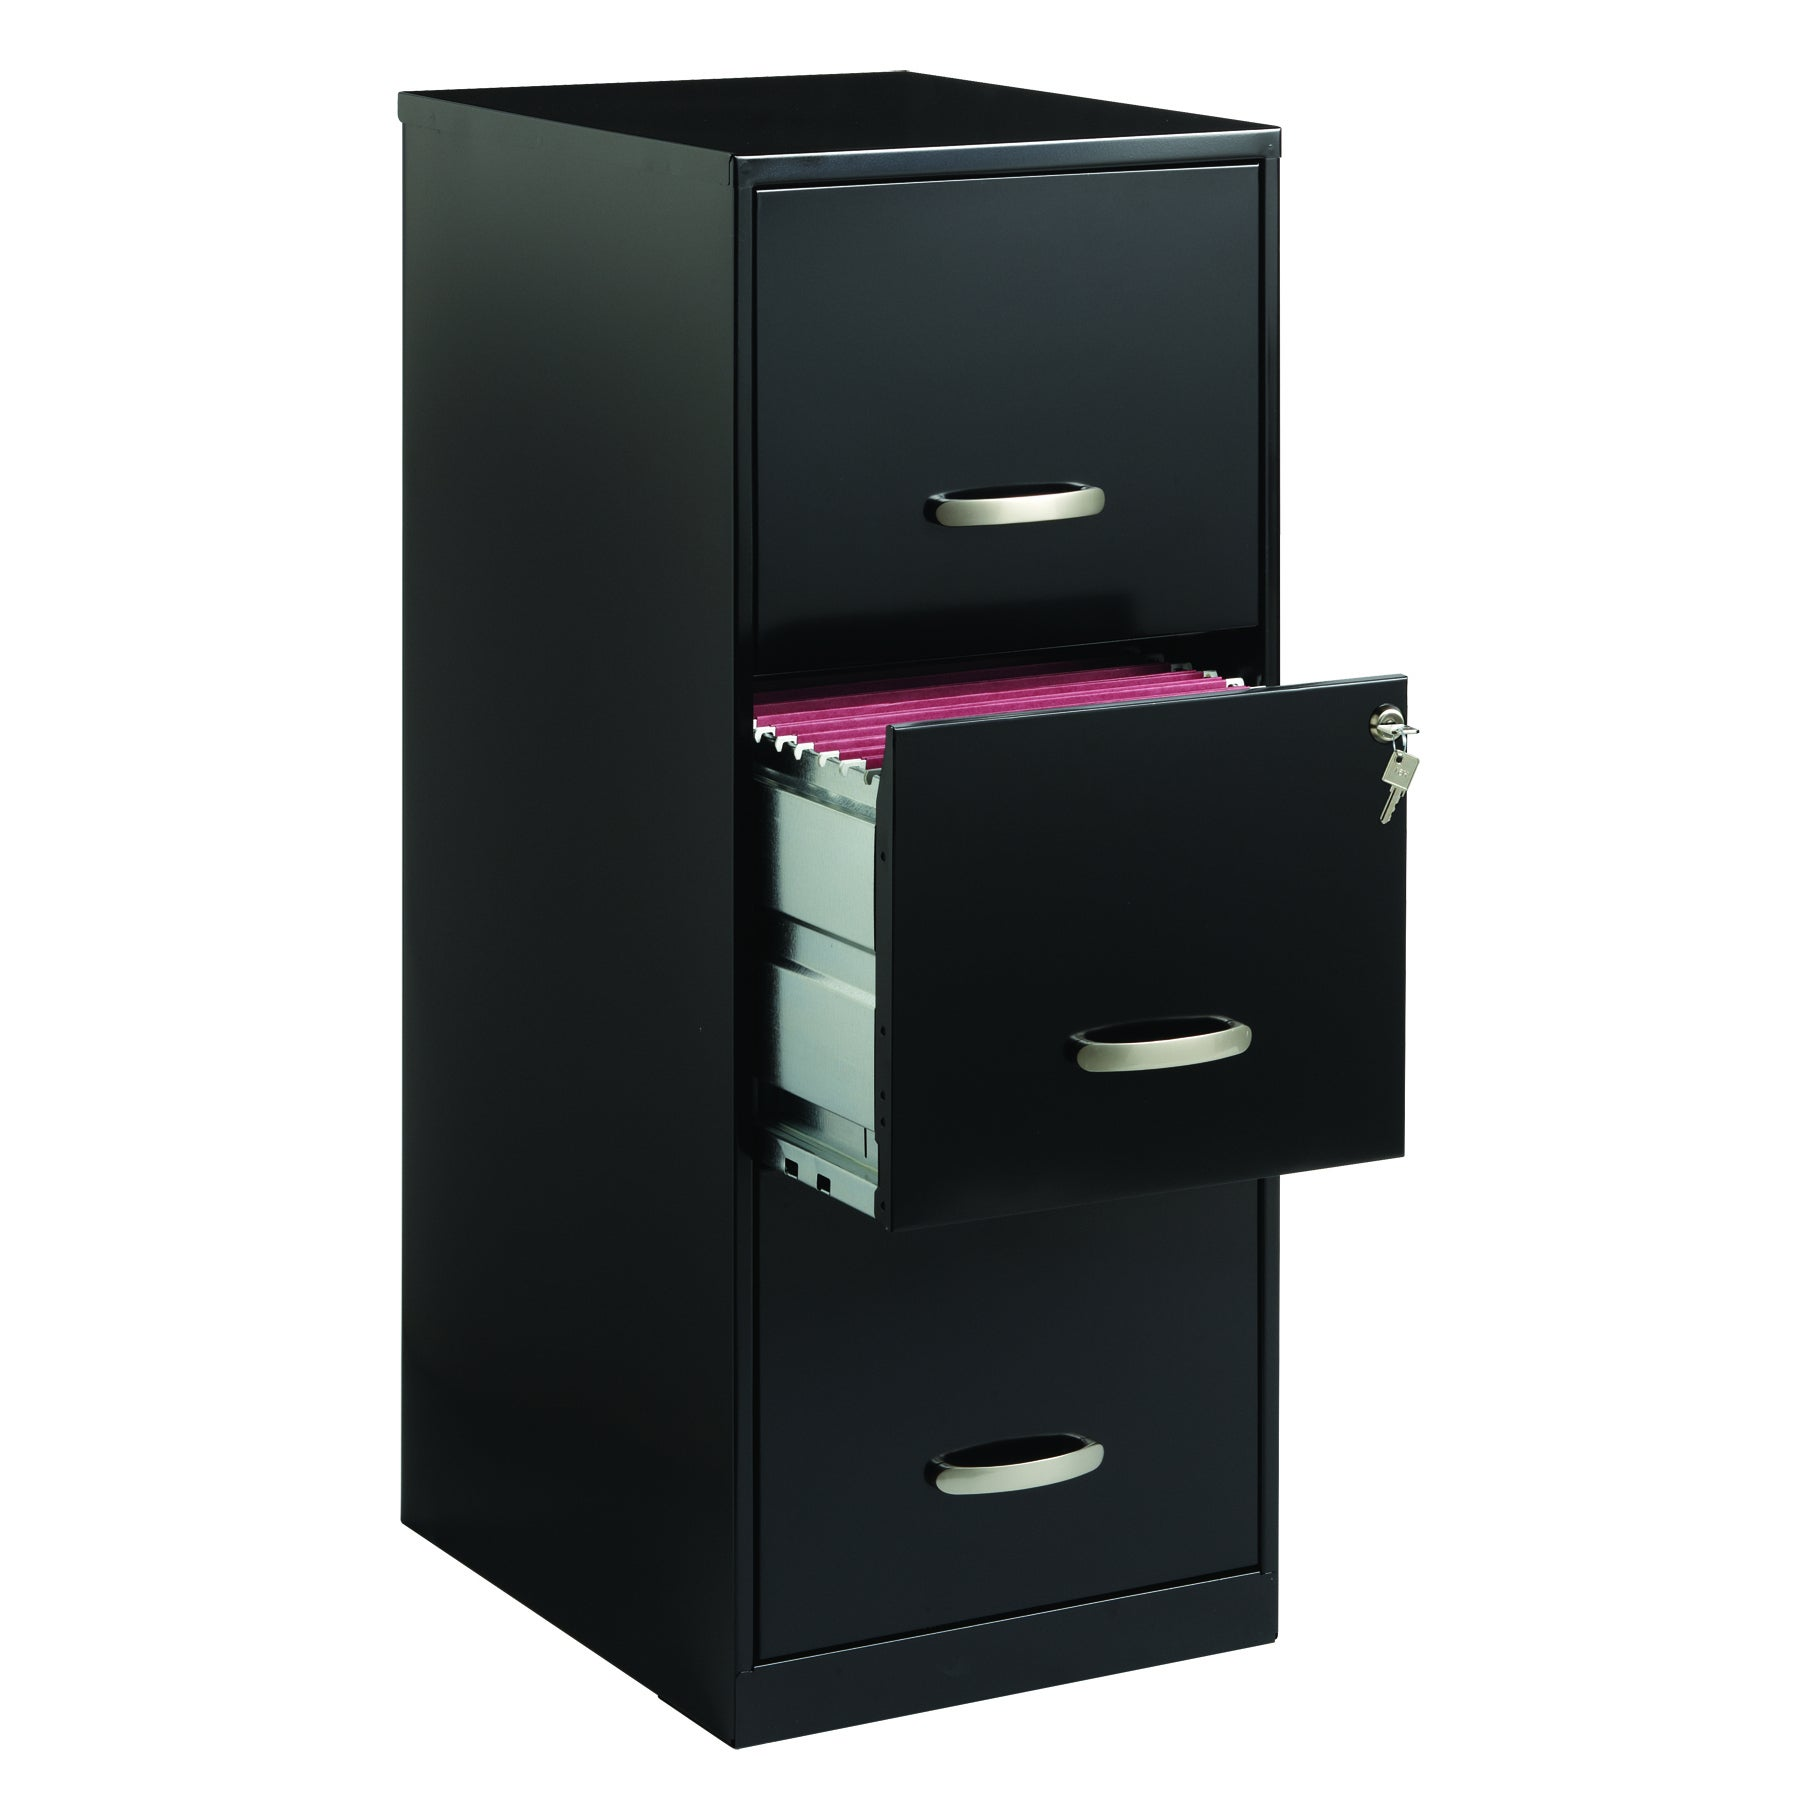 Space Solutions 34-drawer Black Steel File Cabinet